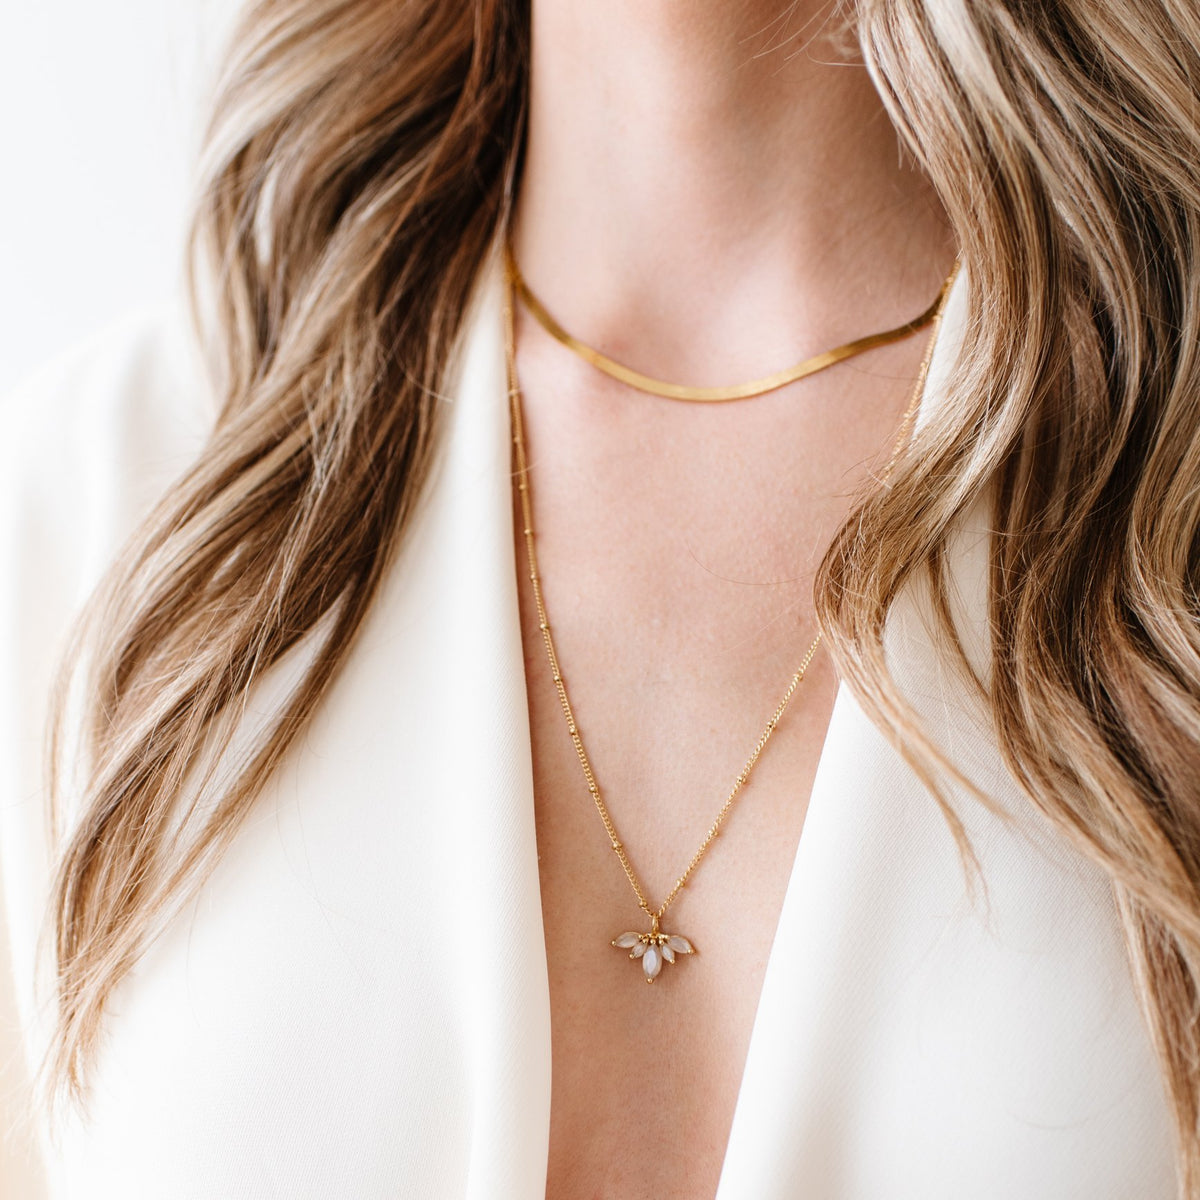 UNITY CROWN NECKLACE - CHAI MOONSTONE & GOLD - LIMITED EDITION - SO PRETTY CARA COTTER